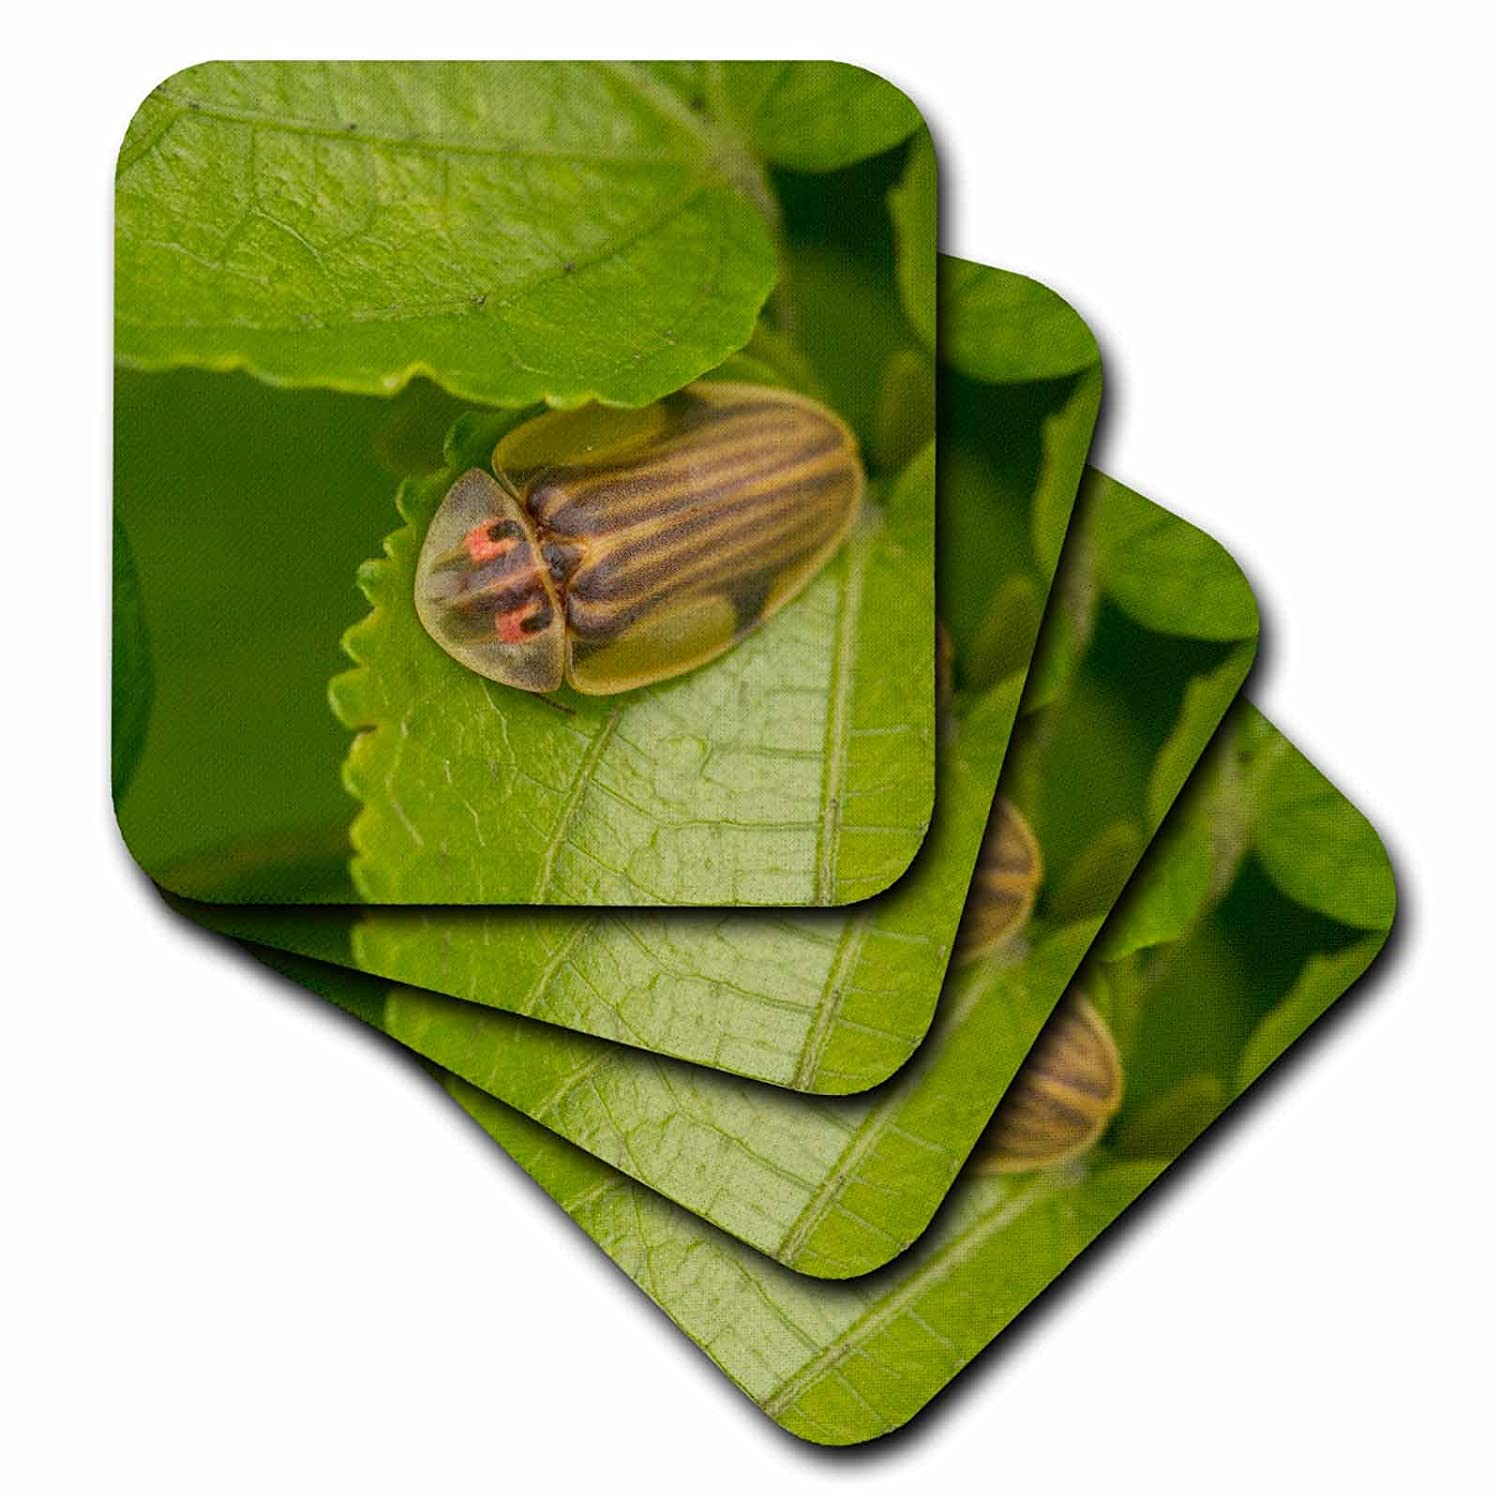 Costa Rica Rob Sheppard 3dRose cst/_87271/_1 Tortoise shell beetle insect Soft Coasters SA22 RSP0022 Set of 4